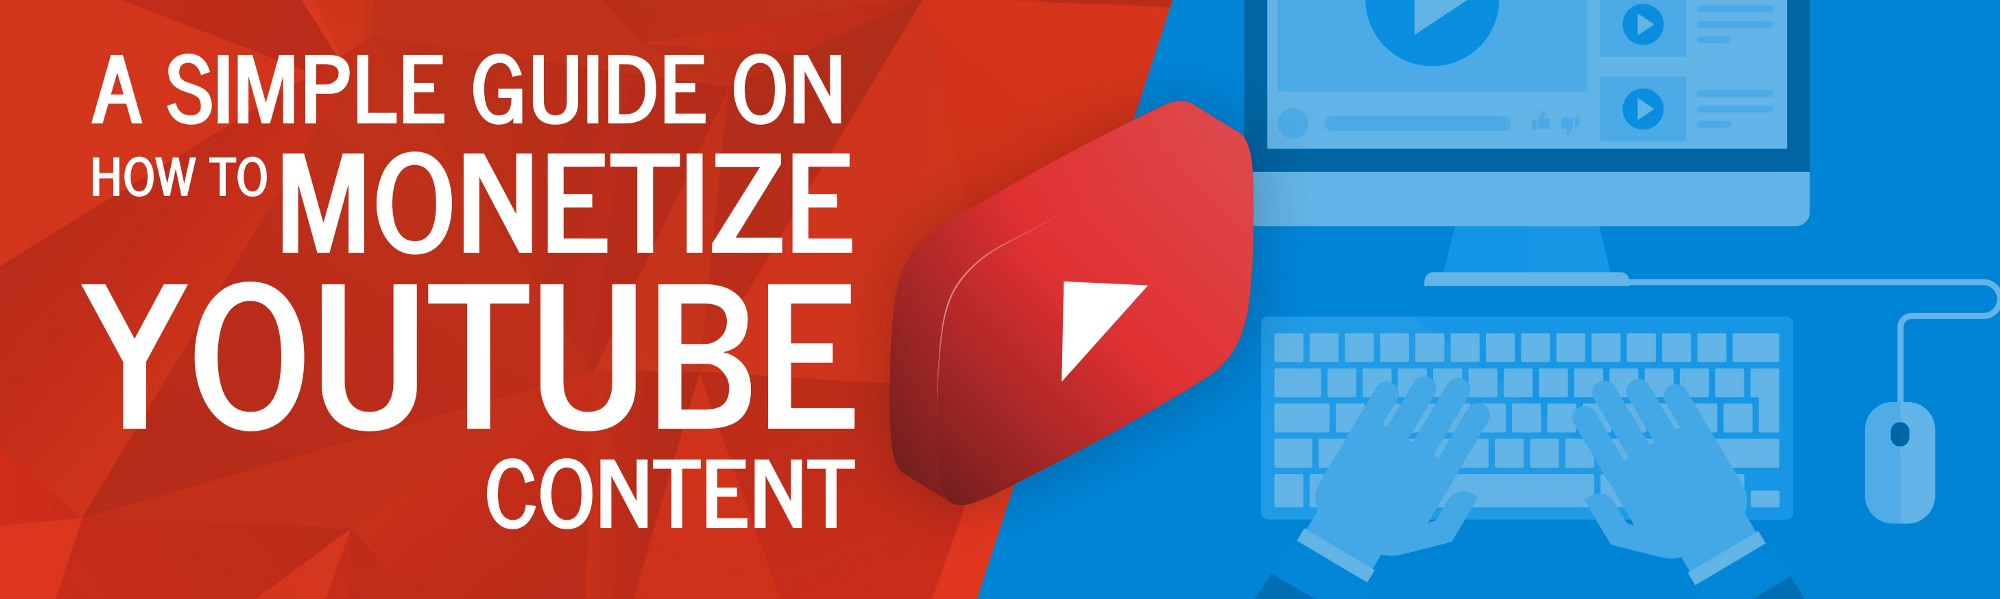 A Simple Guide on How to Monetize YouTube Content